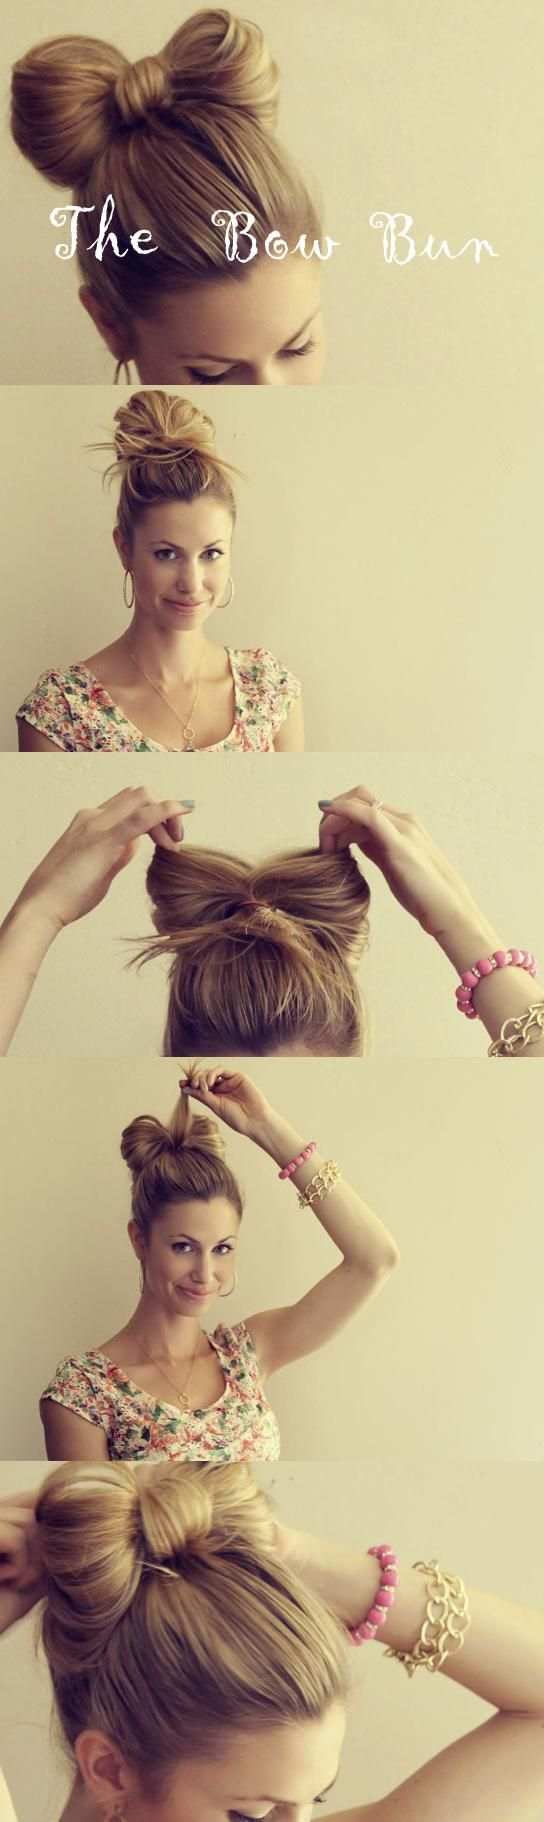 bow hair bun for bridesmaids perhaps?